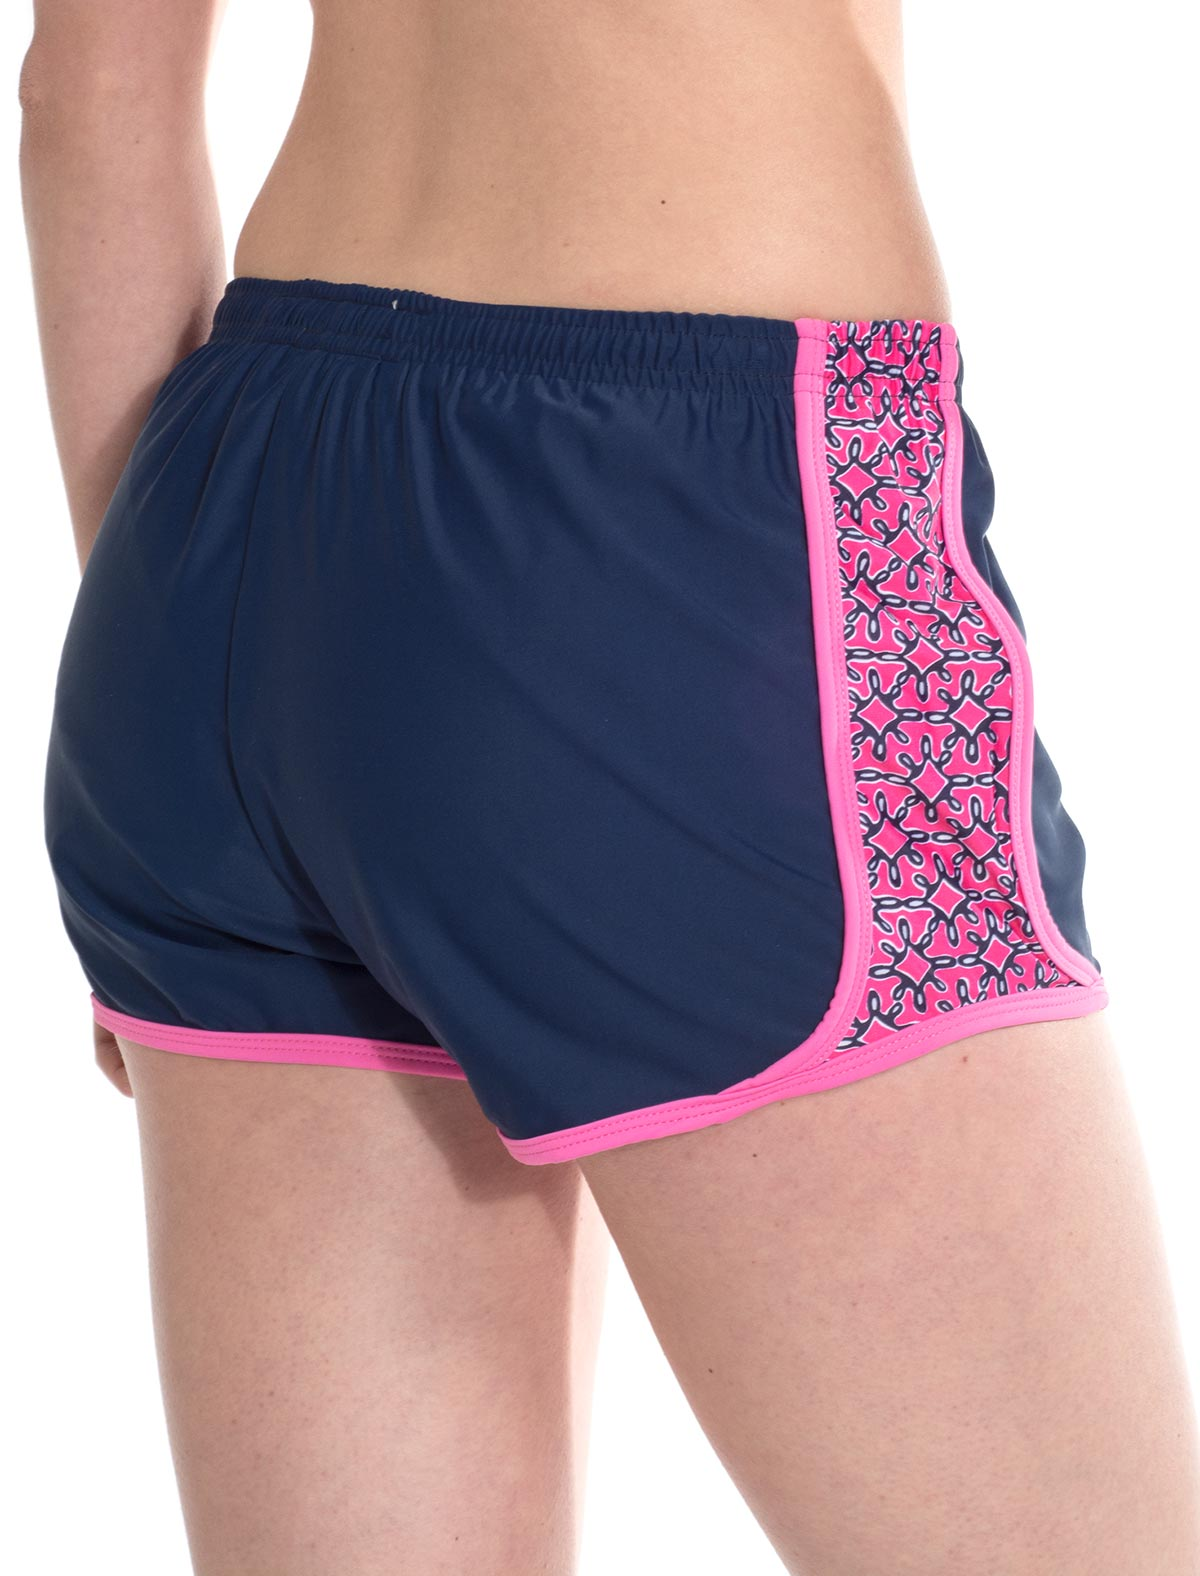 Girl's Best Friend Shorts